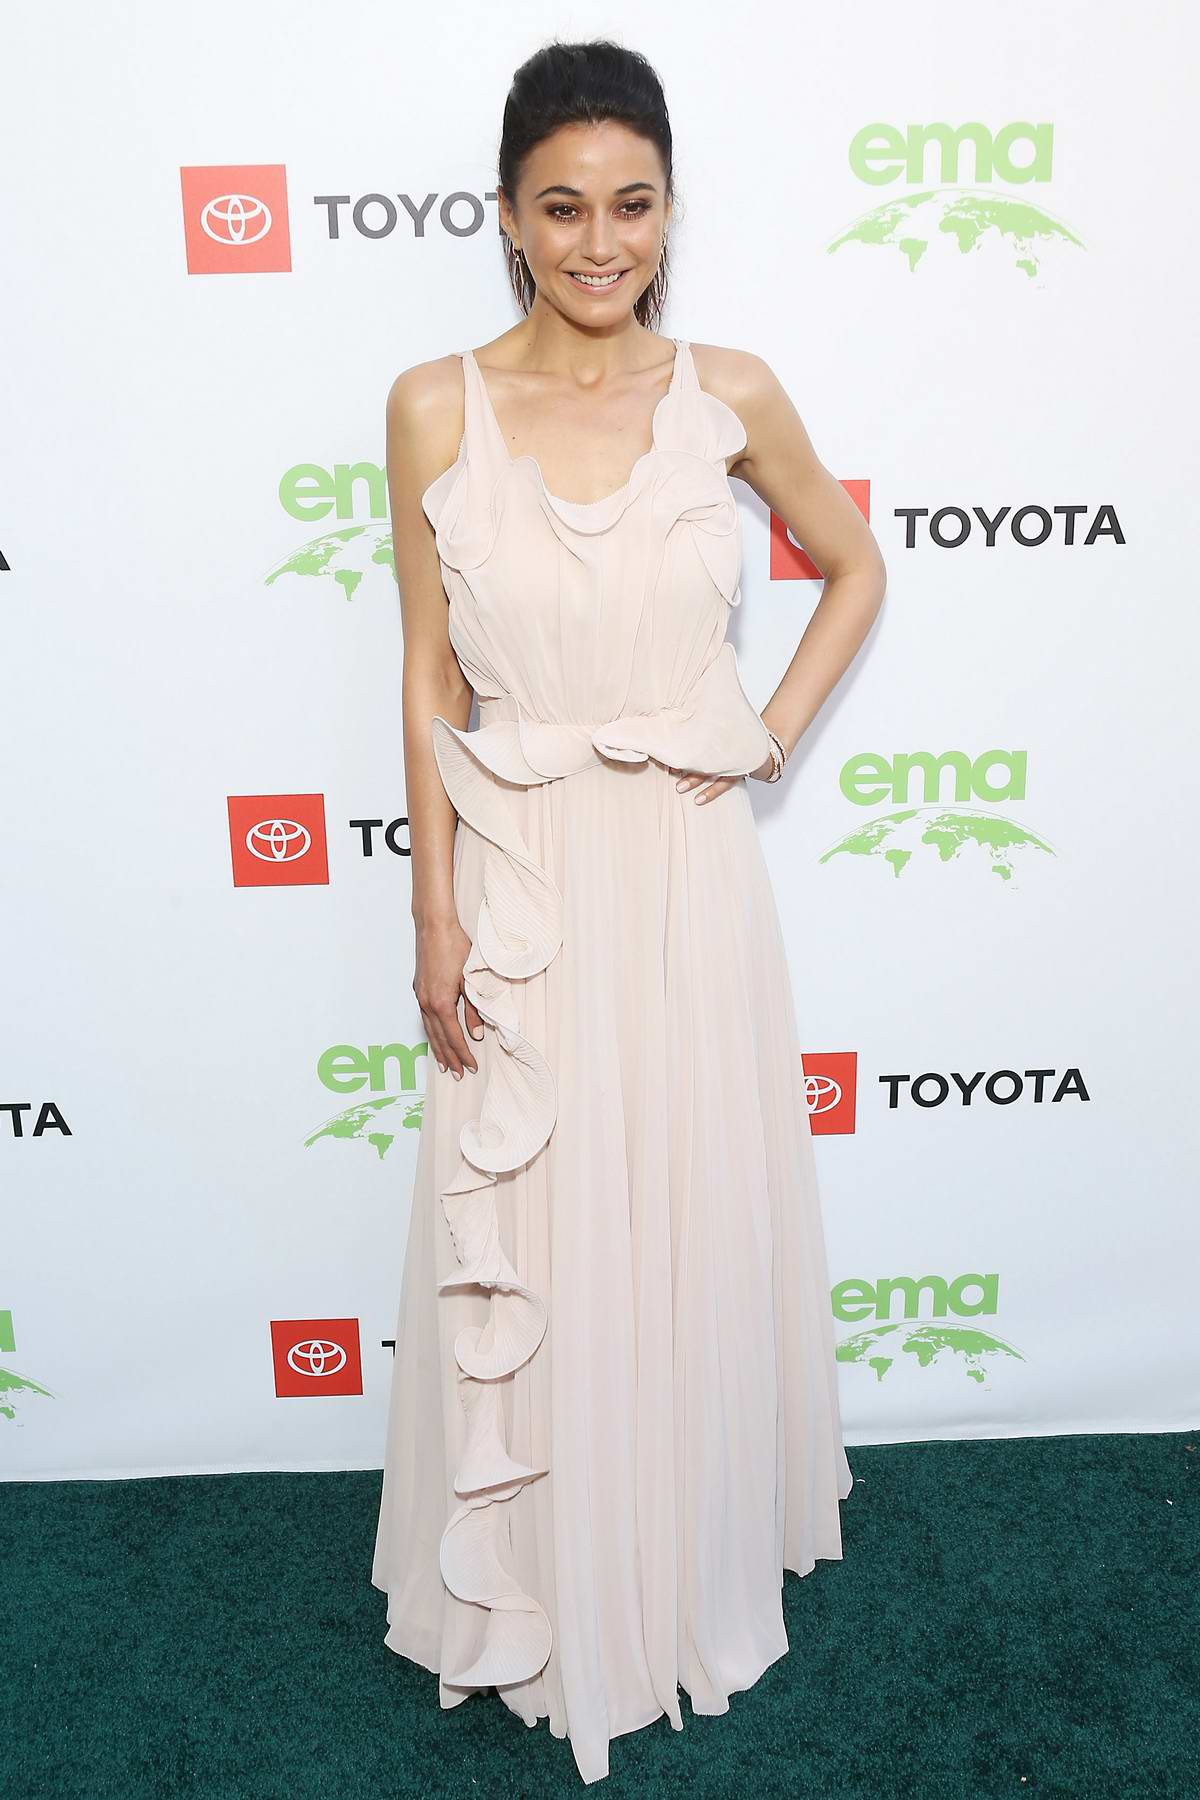 Emmanuelle Chriqui attends the 29th Annual Environmental Media Awards at The Montage Hotel in Beverly Hills, Los Angeles